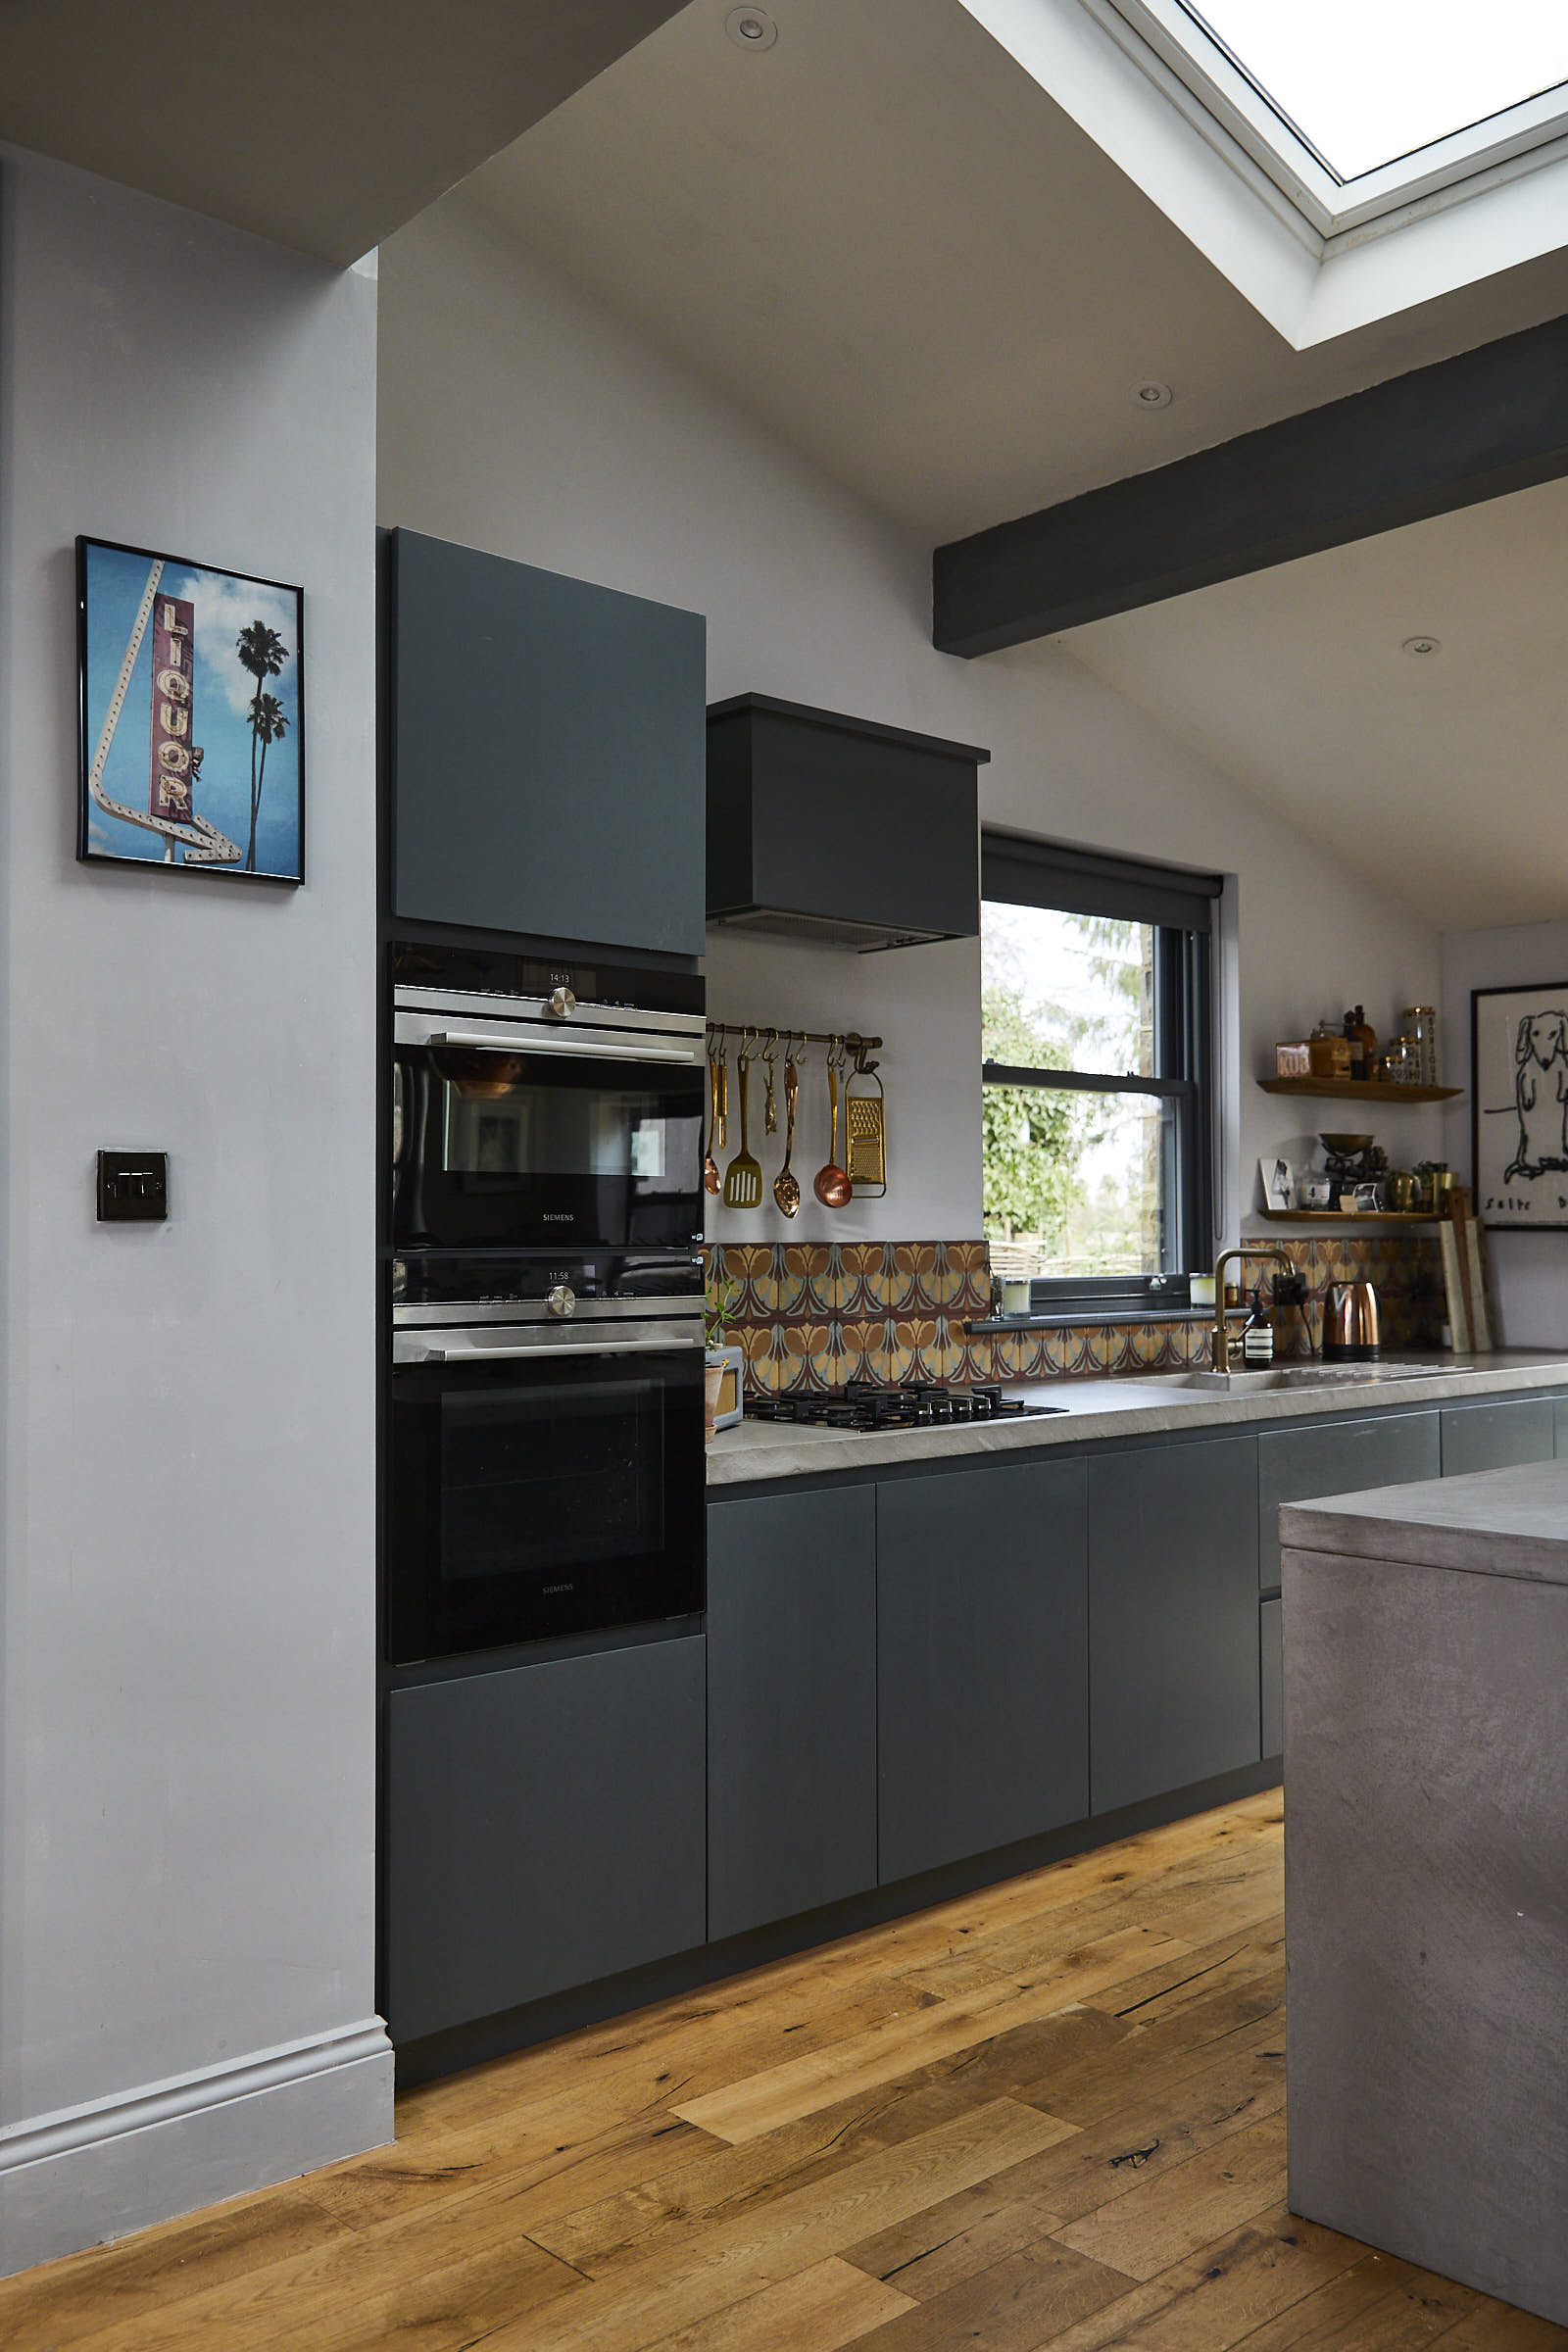 Integrated Siemens eye level ovens in slab painted tall kitchen units